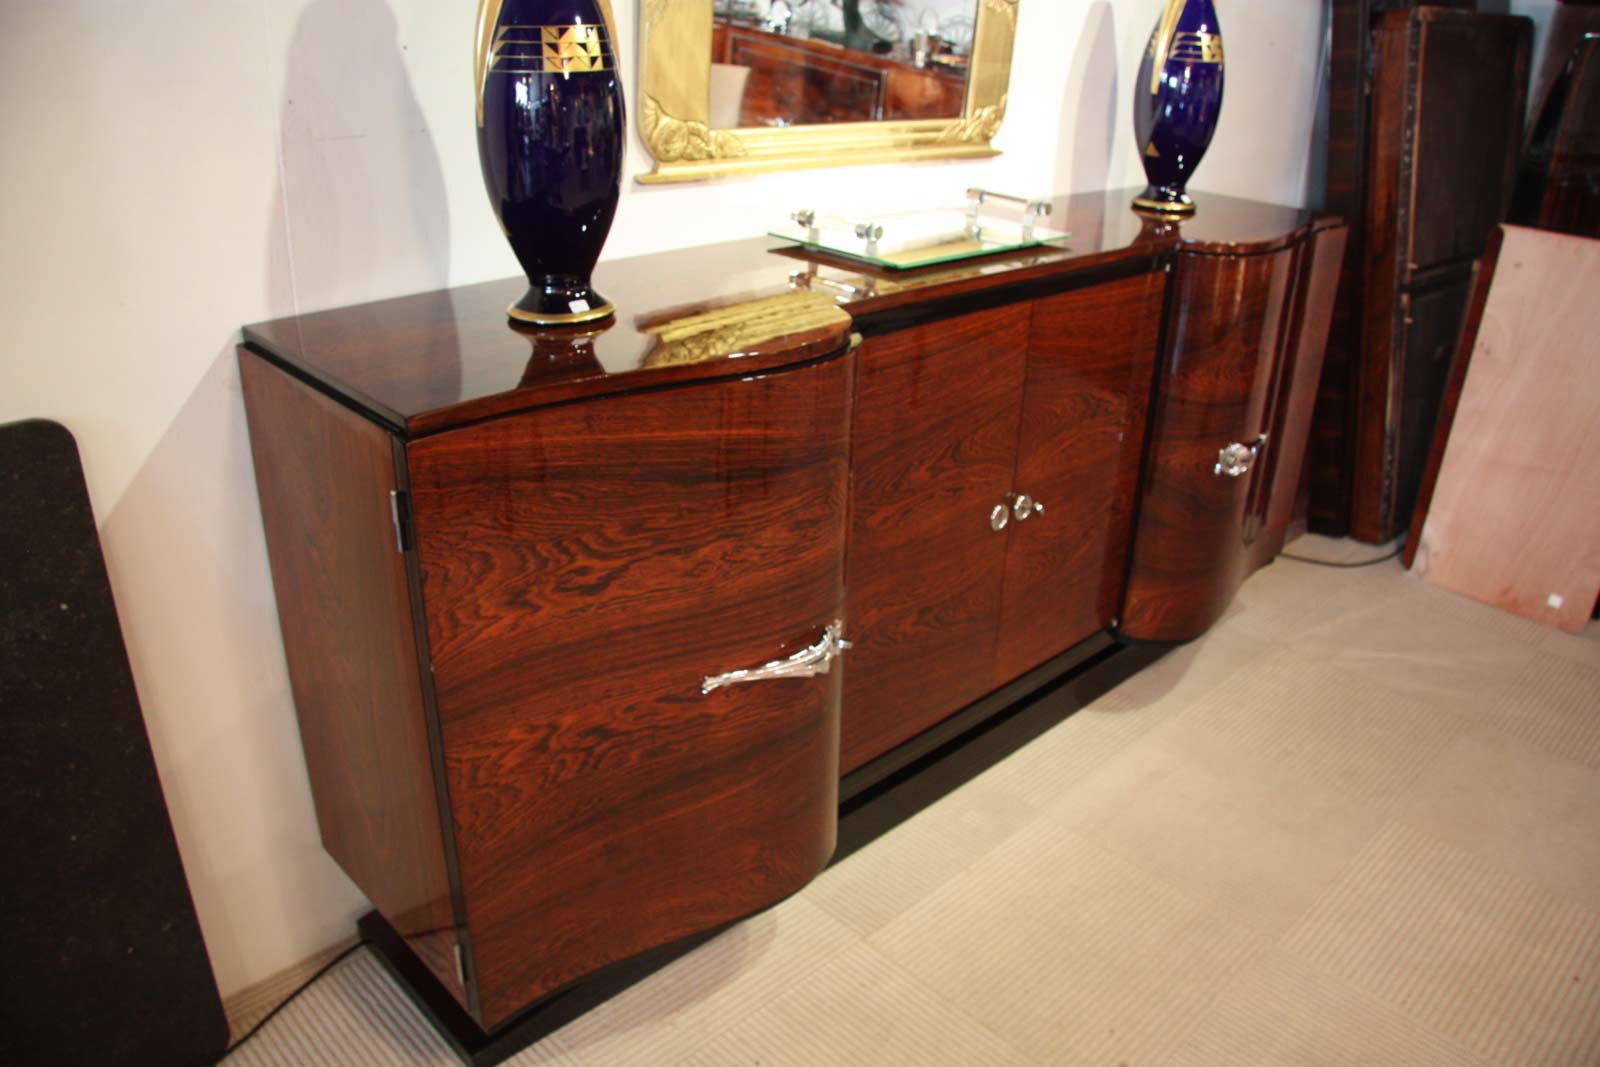 Enfilade sideboard en palissandre de rio art d co ref enf for Meuble art deco belgique